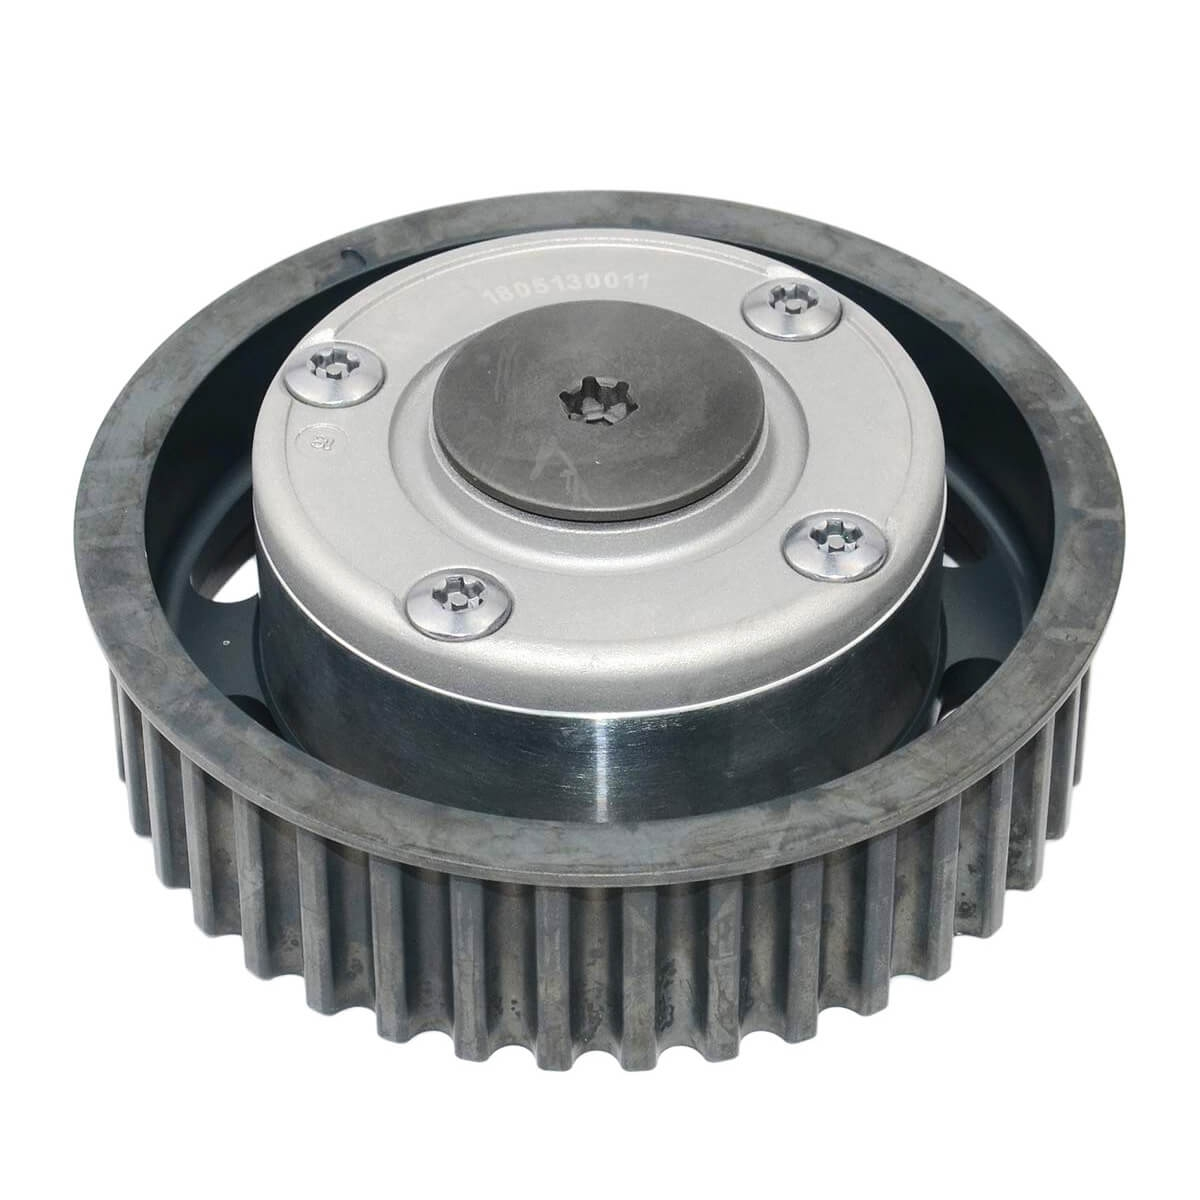 BEDFORD CHEVANNE Cam Dephaser Pulley